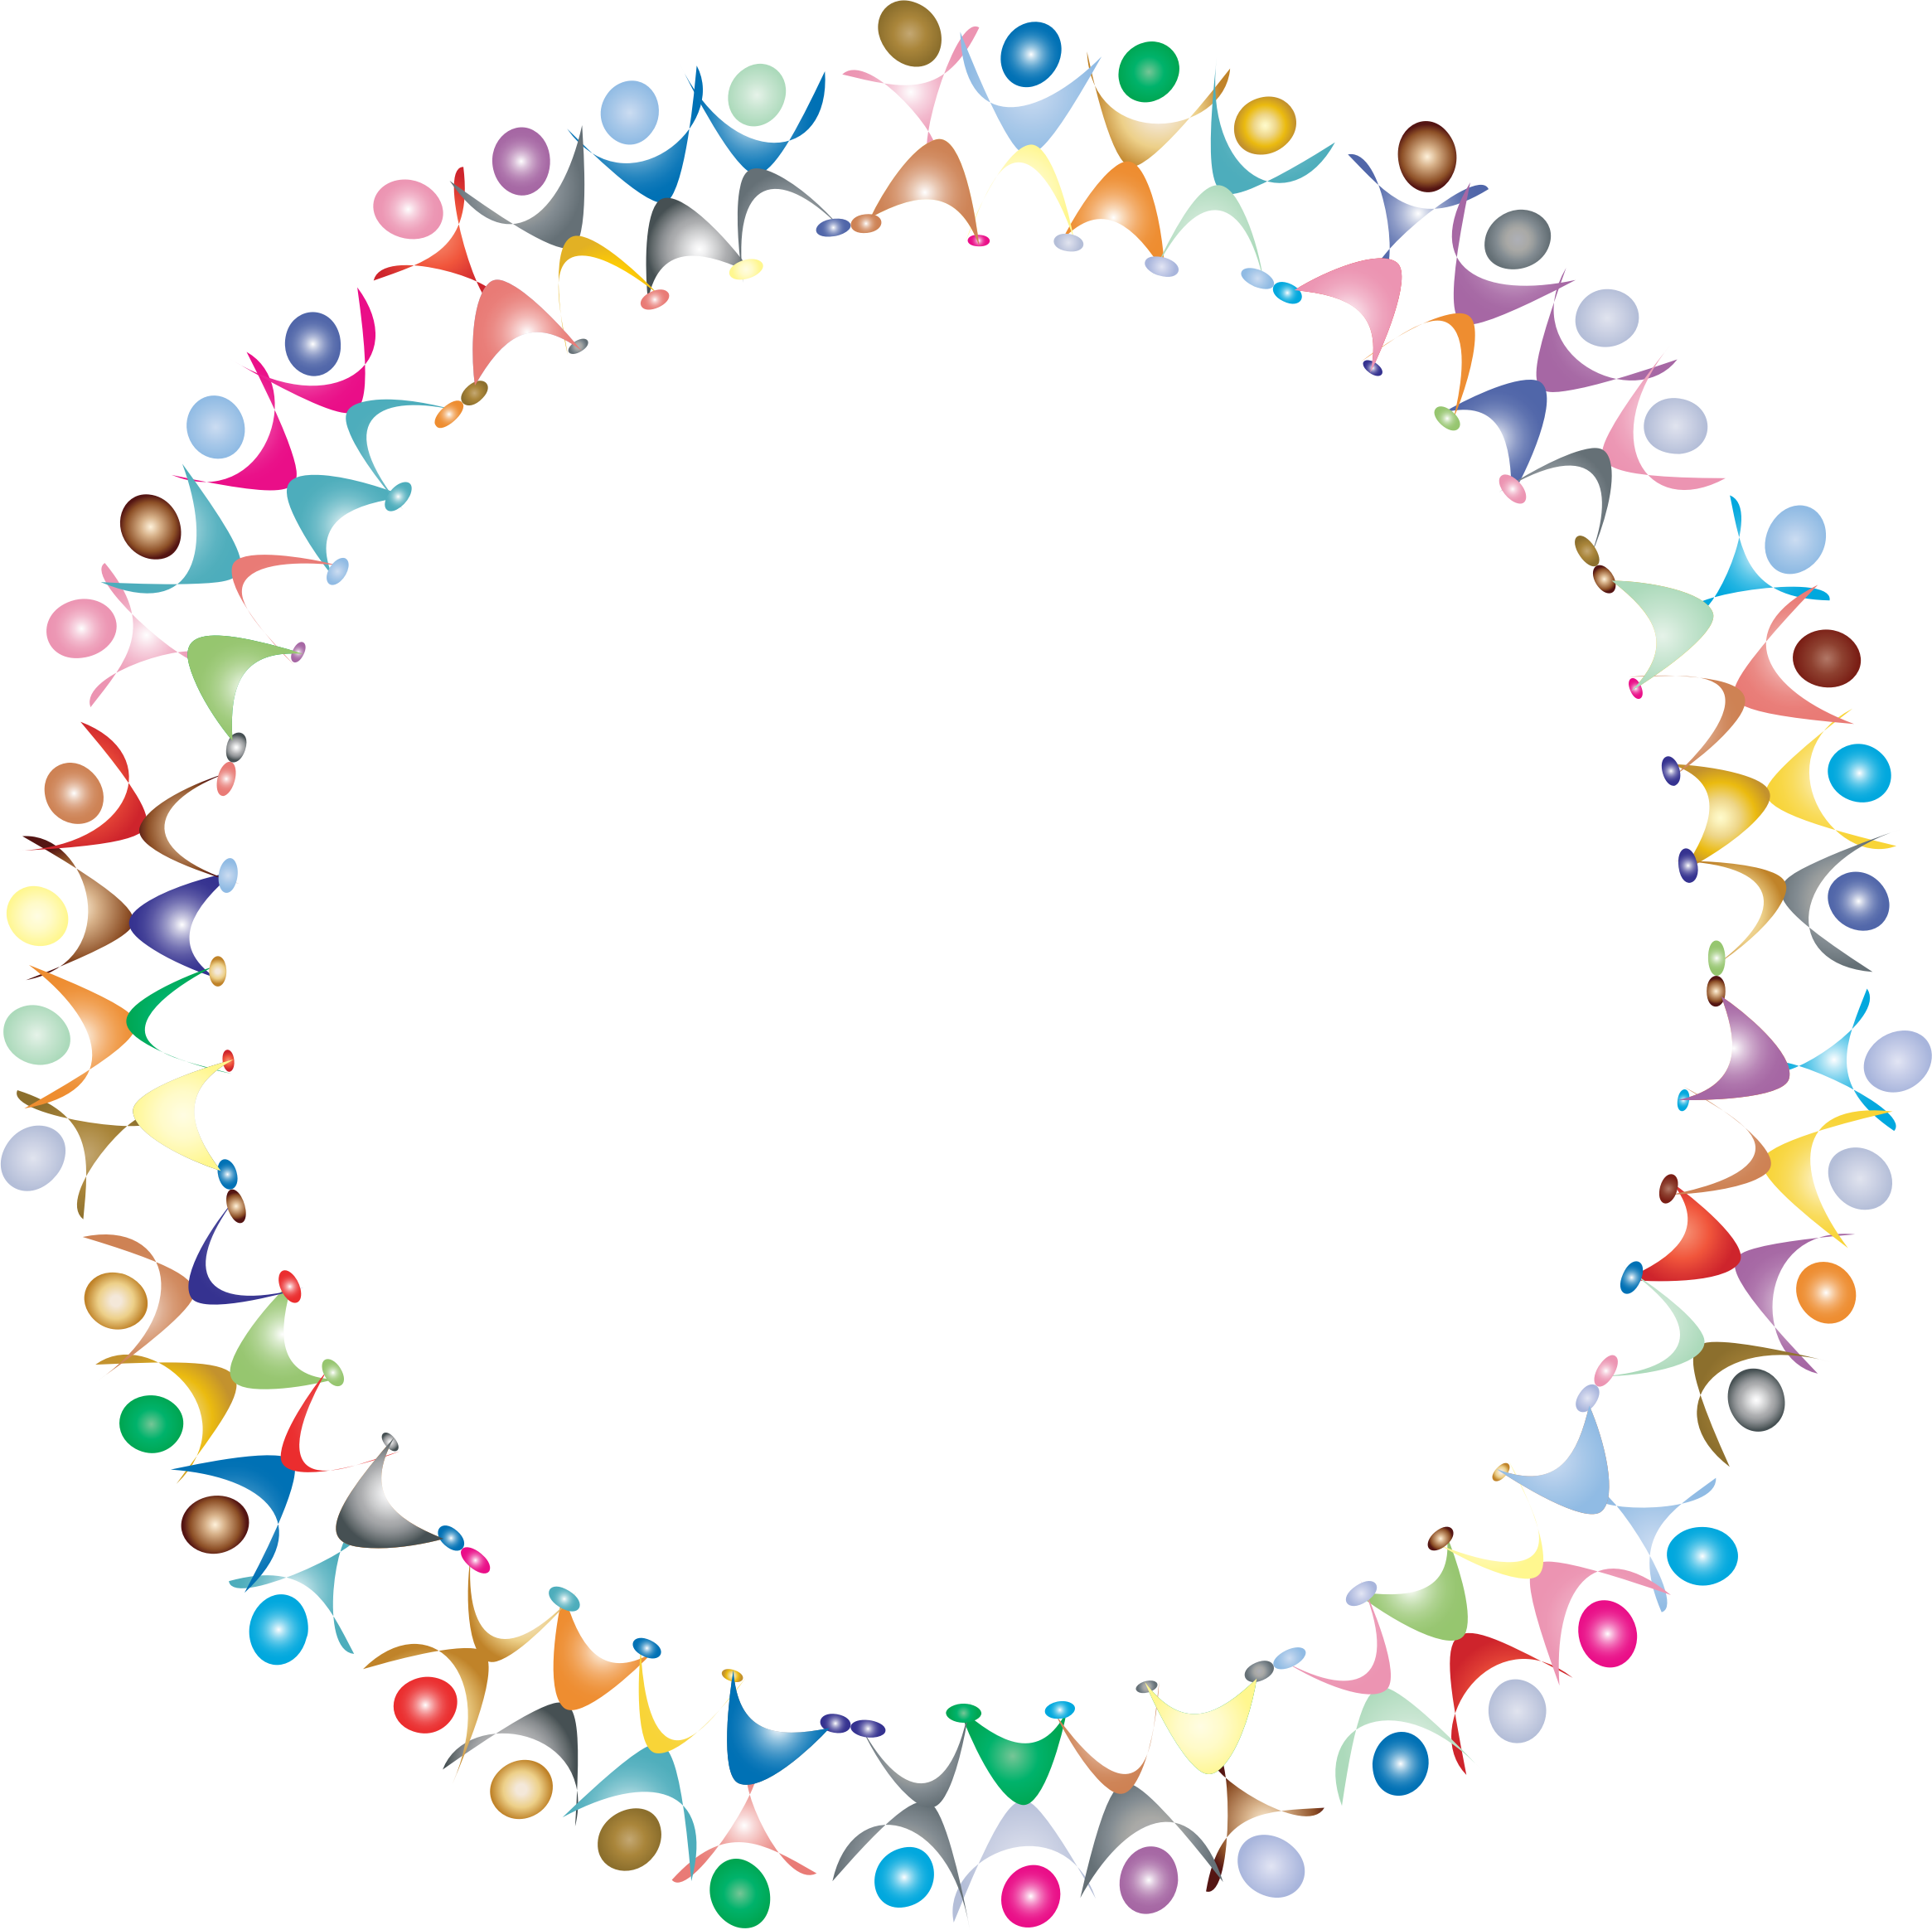 Dancing prismatic big image. Clipart people circle